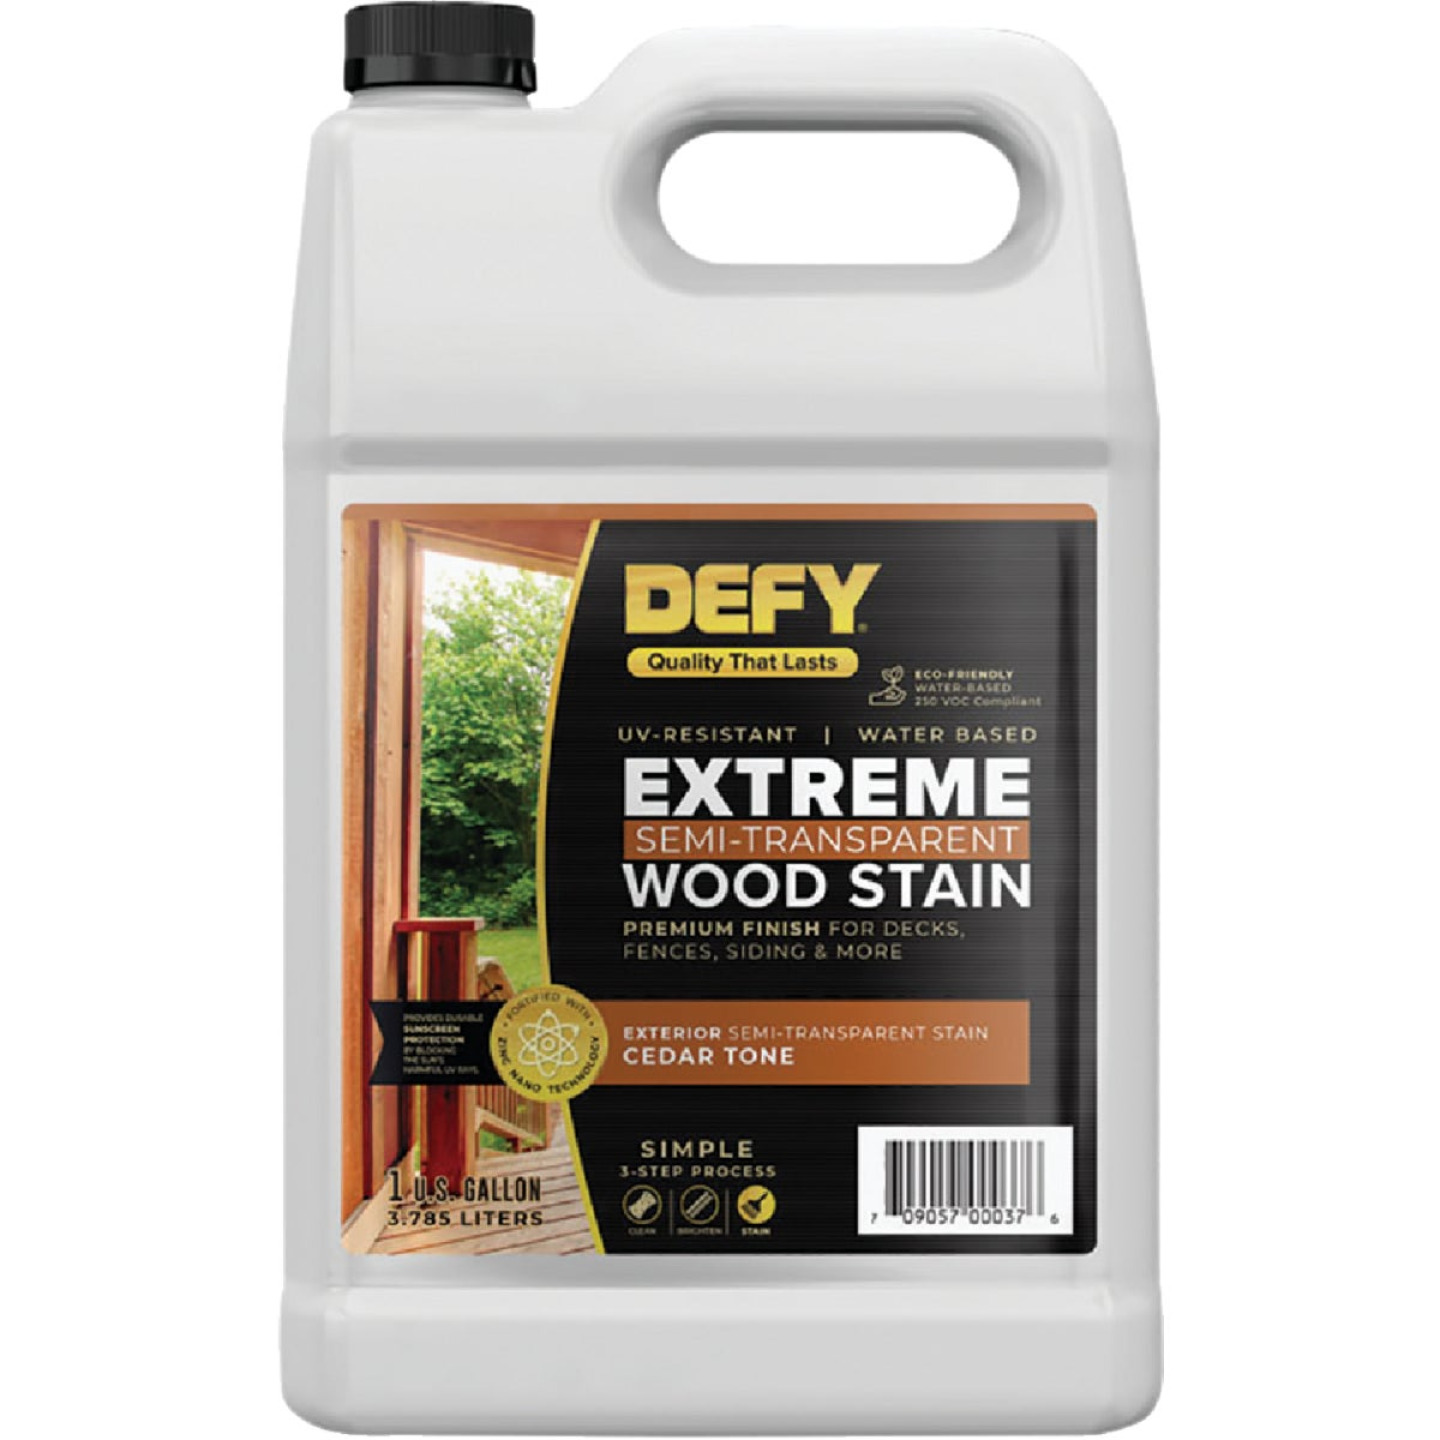 DEFY Extreme Semi-Transparent Exterior Wood Stain, Cedar Tone, 1 Gal. Bottle Image 1